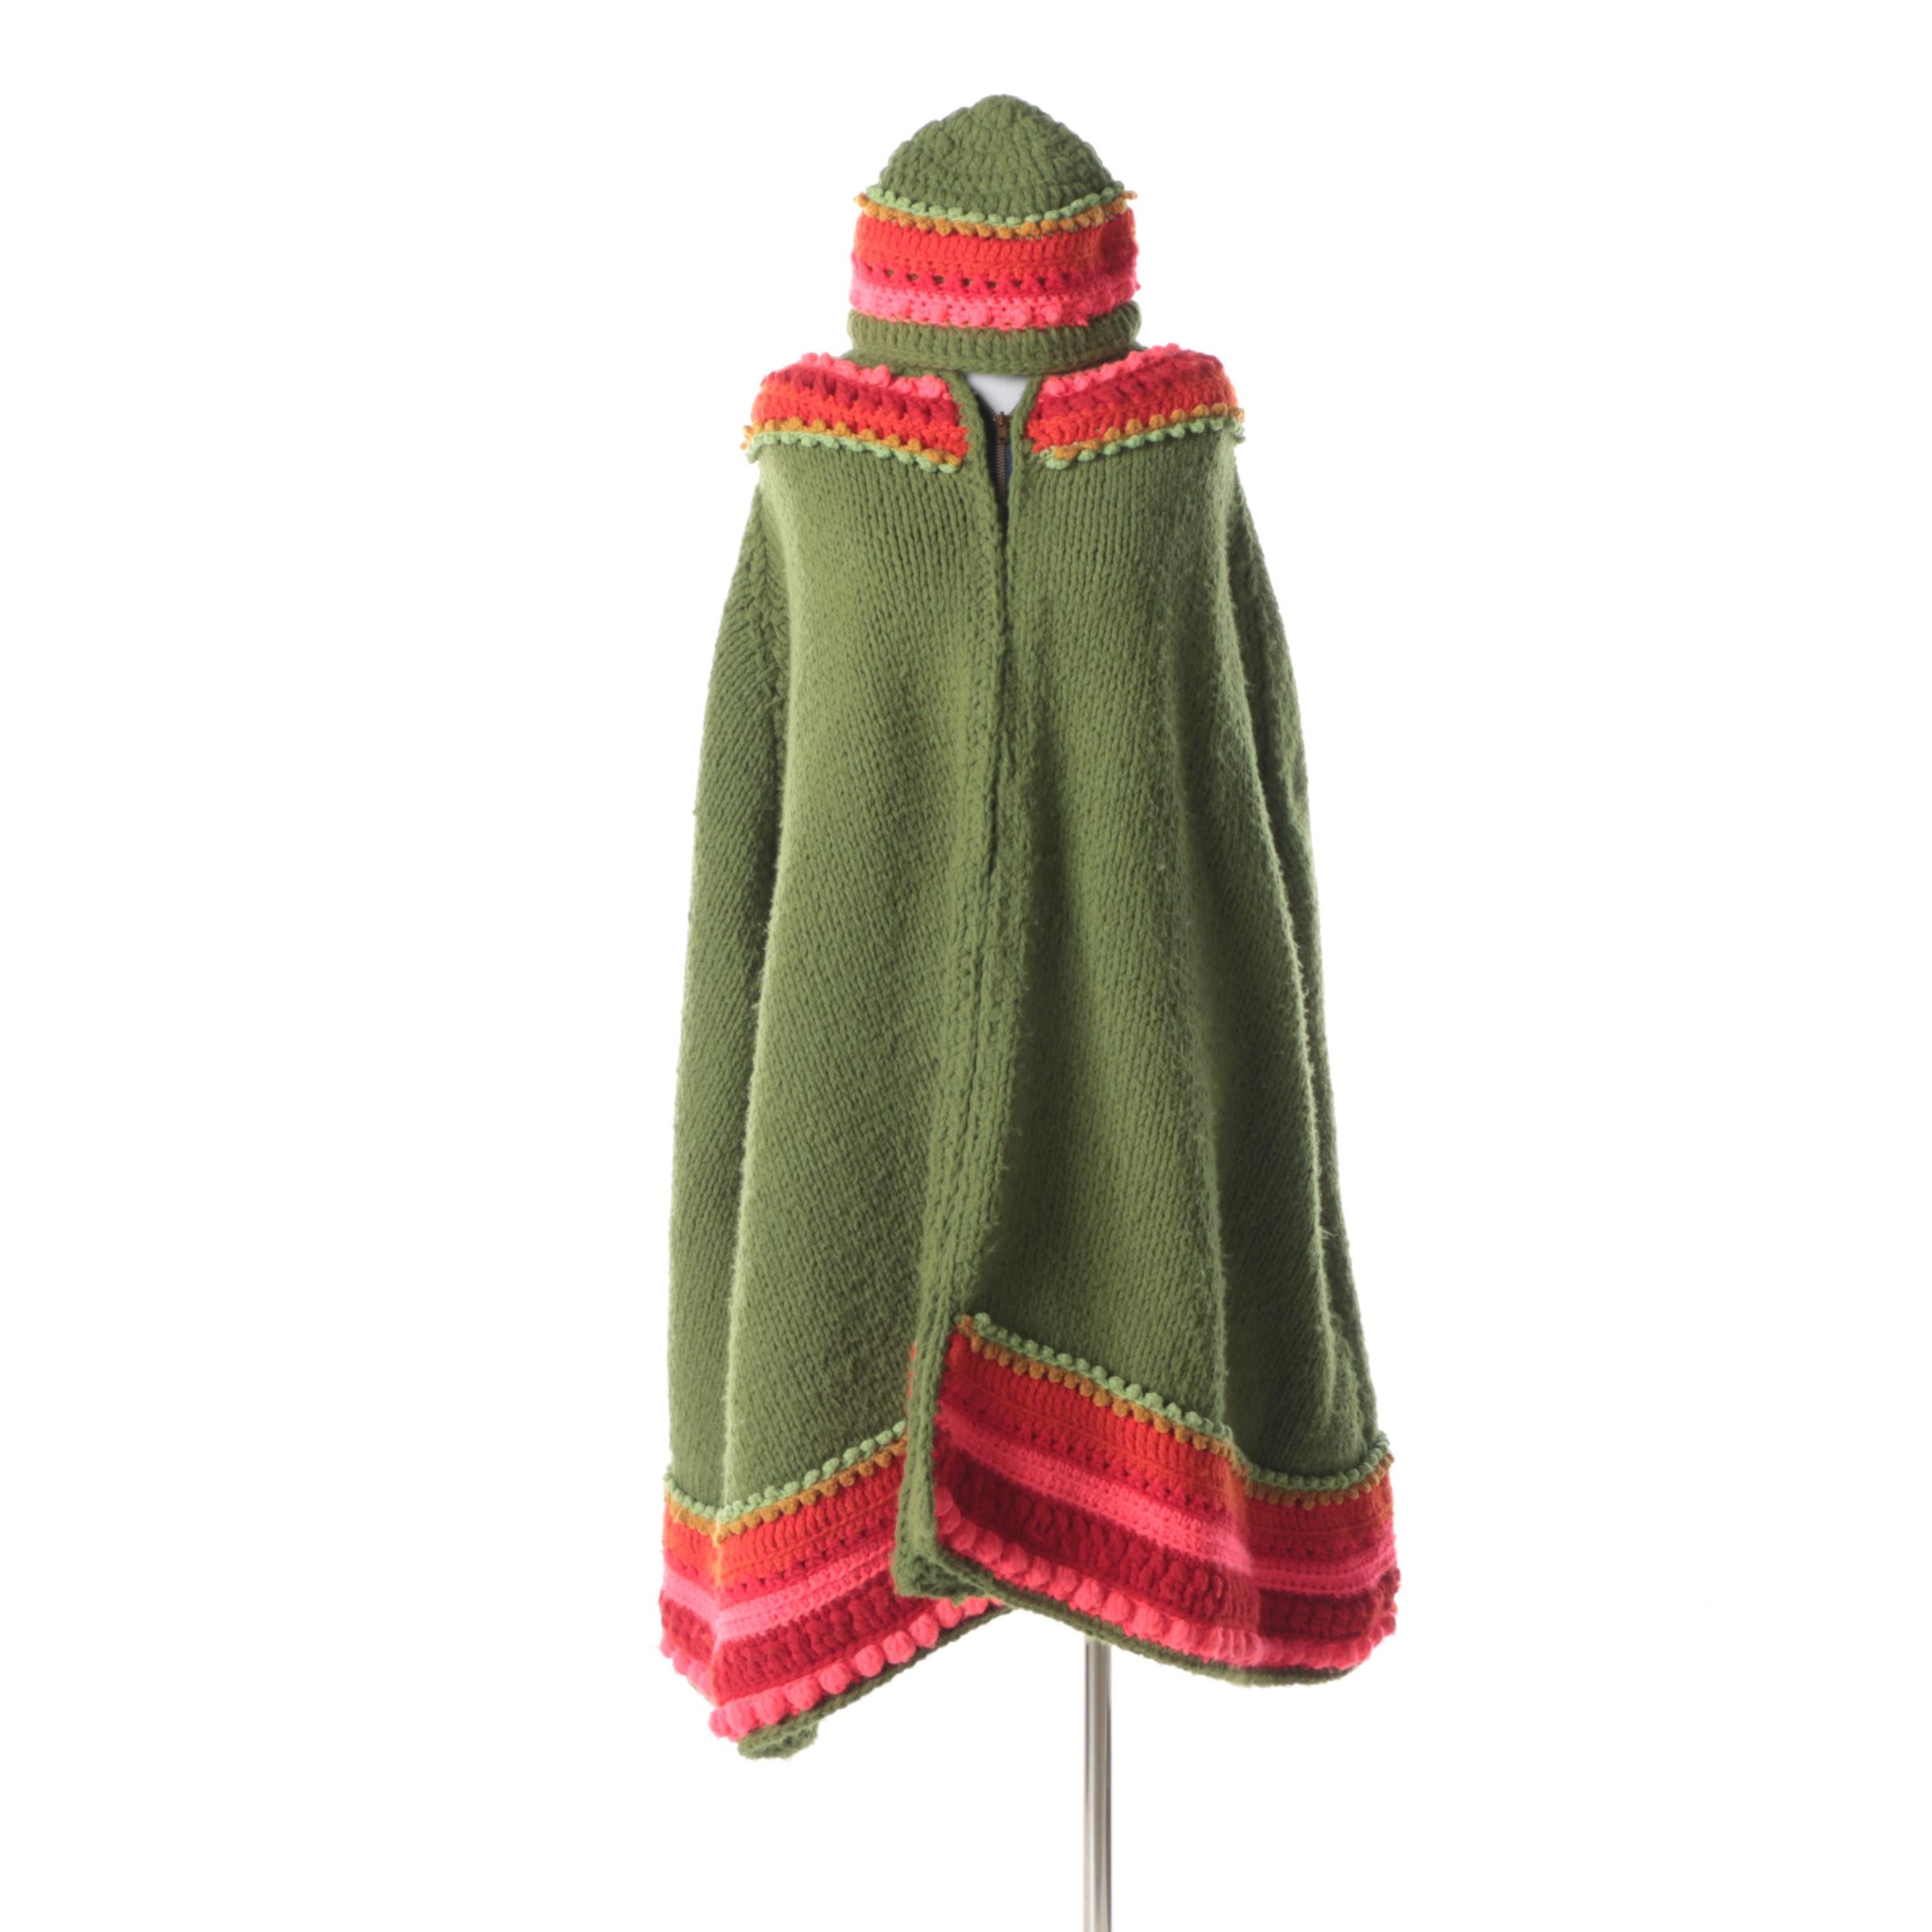 Vintage Oliver Green, Red and Fuchsia Crocheted Poncho with Matching Hat